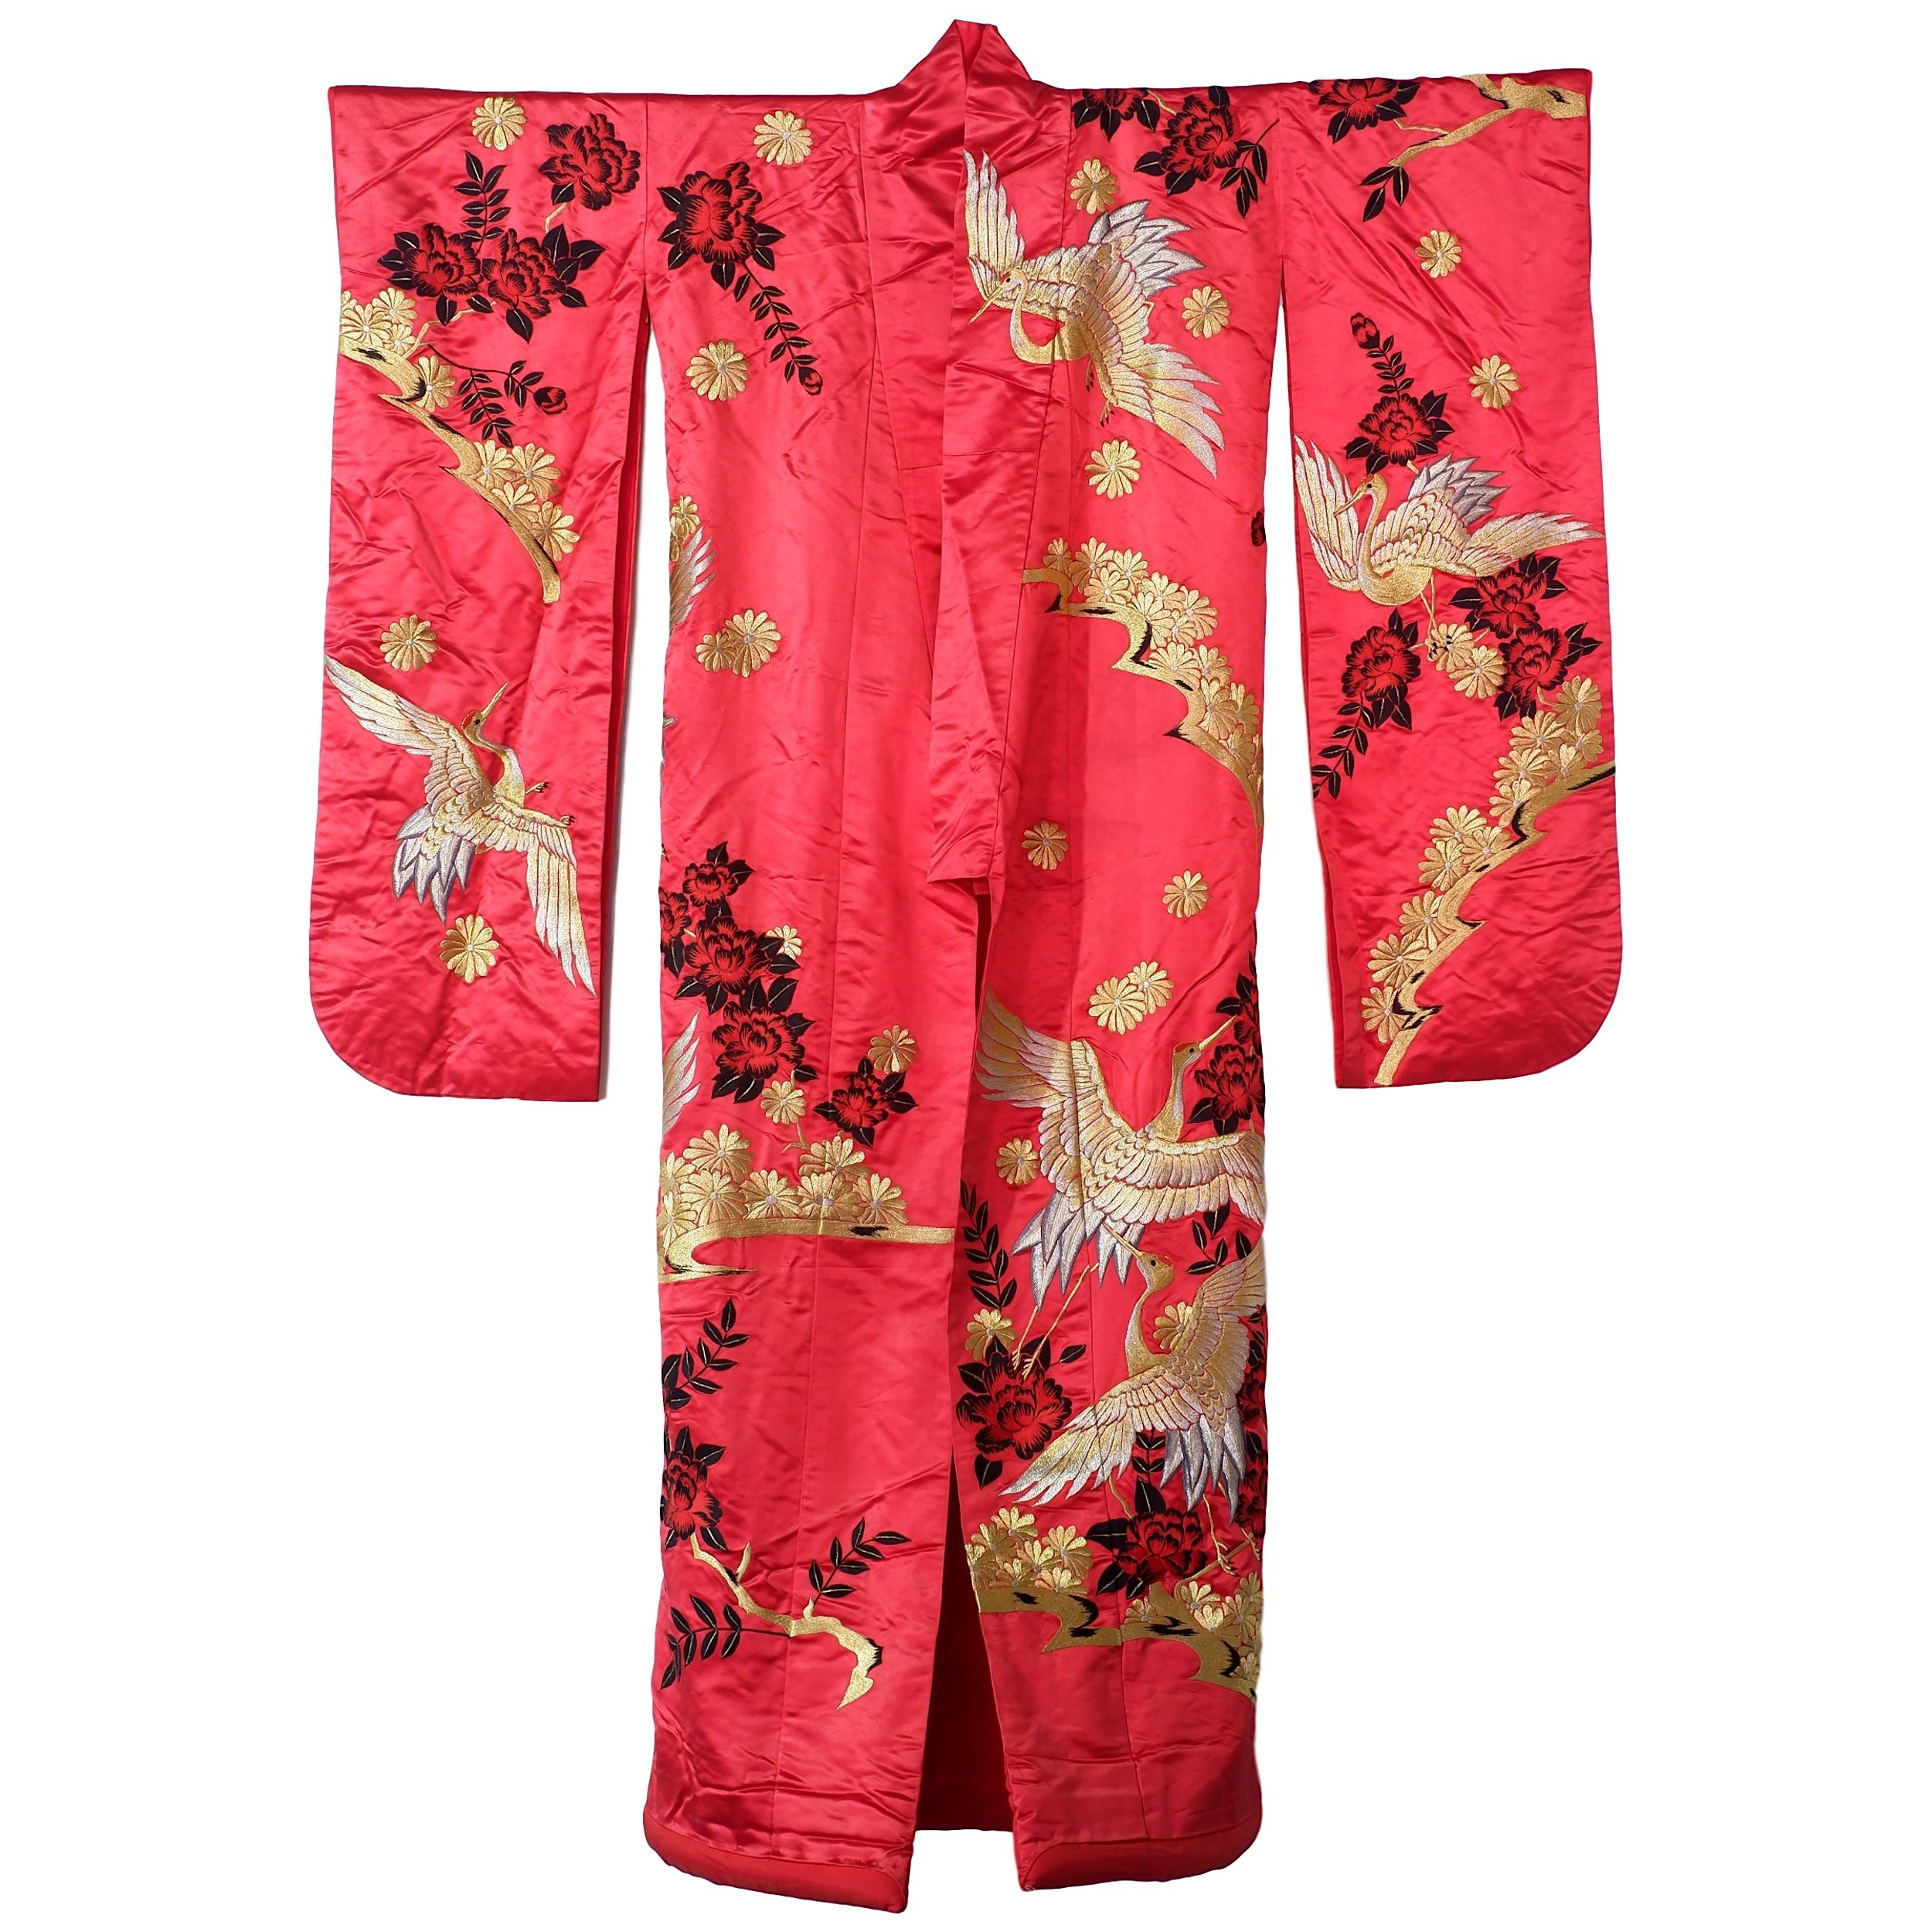 'Fine Vintage Richly Embroidered Japanese Red Ground Silk Kimono'